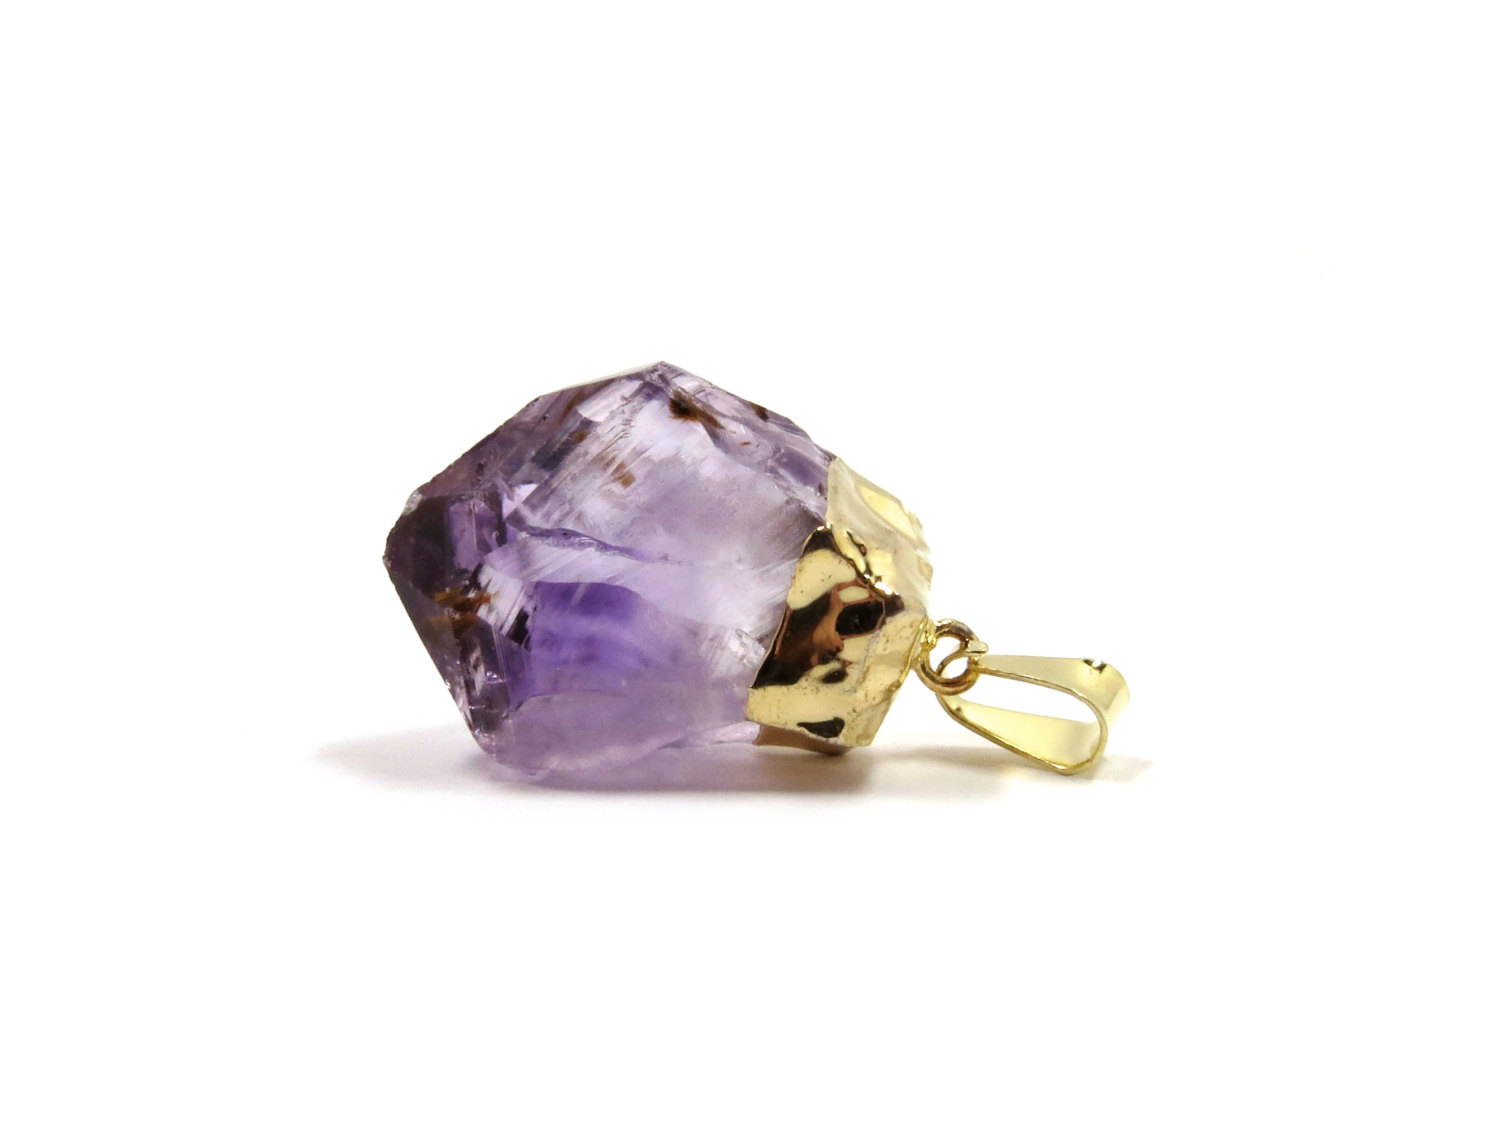 fable pendant raw lore shop amethyst